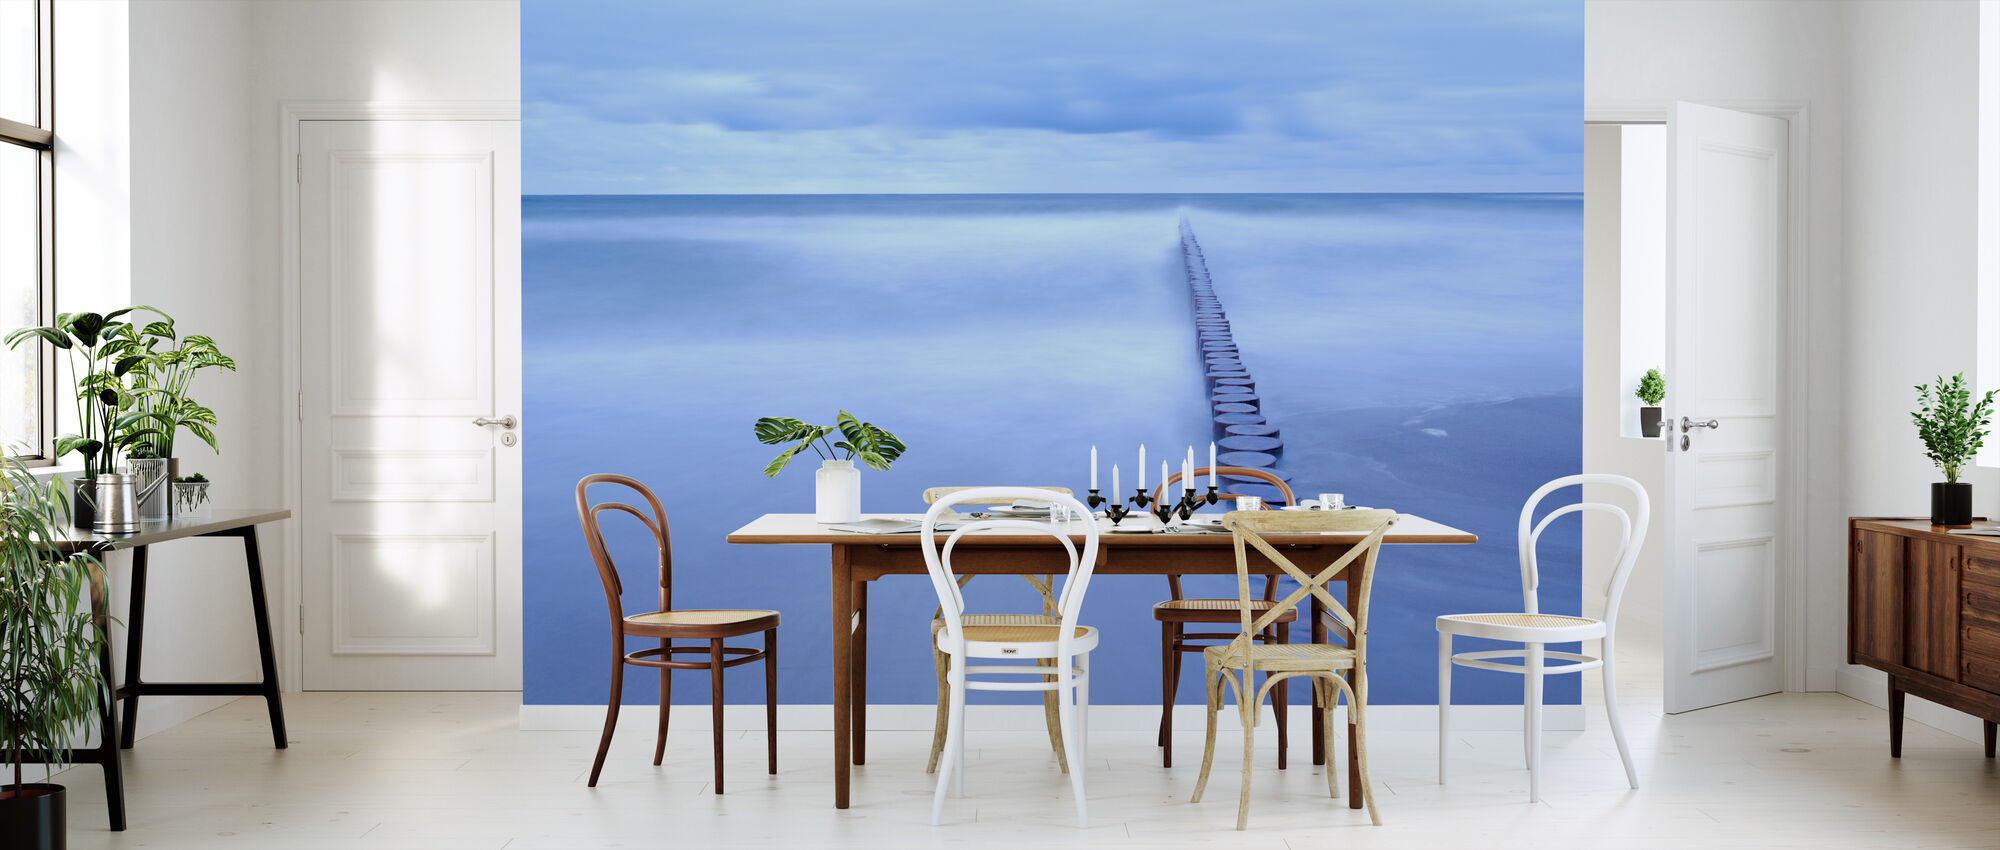 Breakwater at Niechorze - Wallpaper - Kitchen